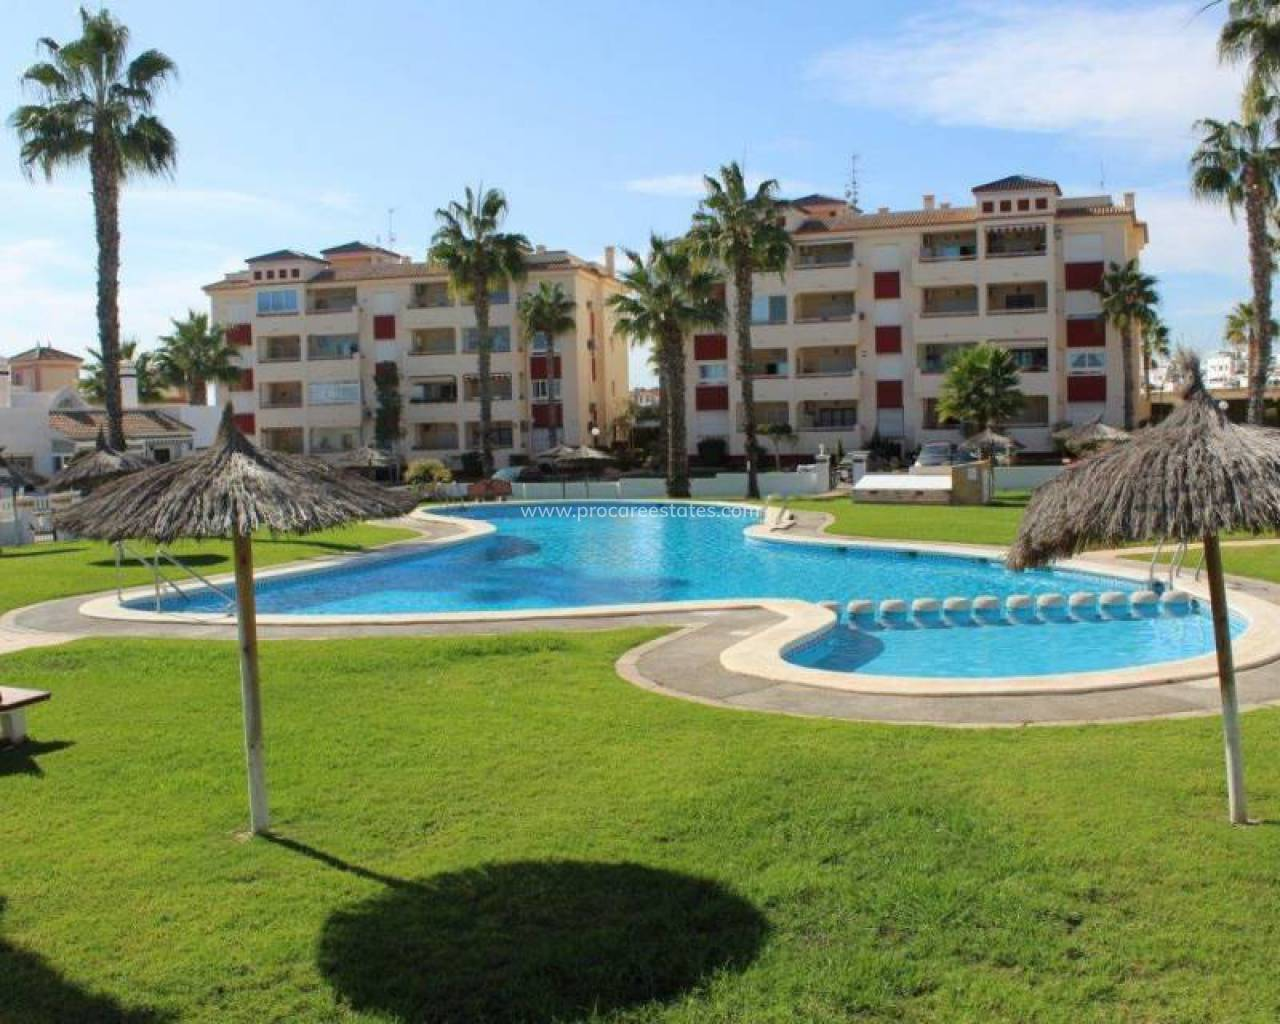 Appartement - Verkoop - Orihuela Costa - Playa Flamenca